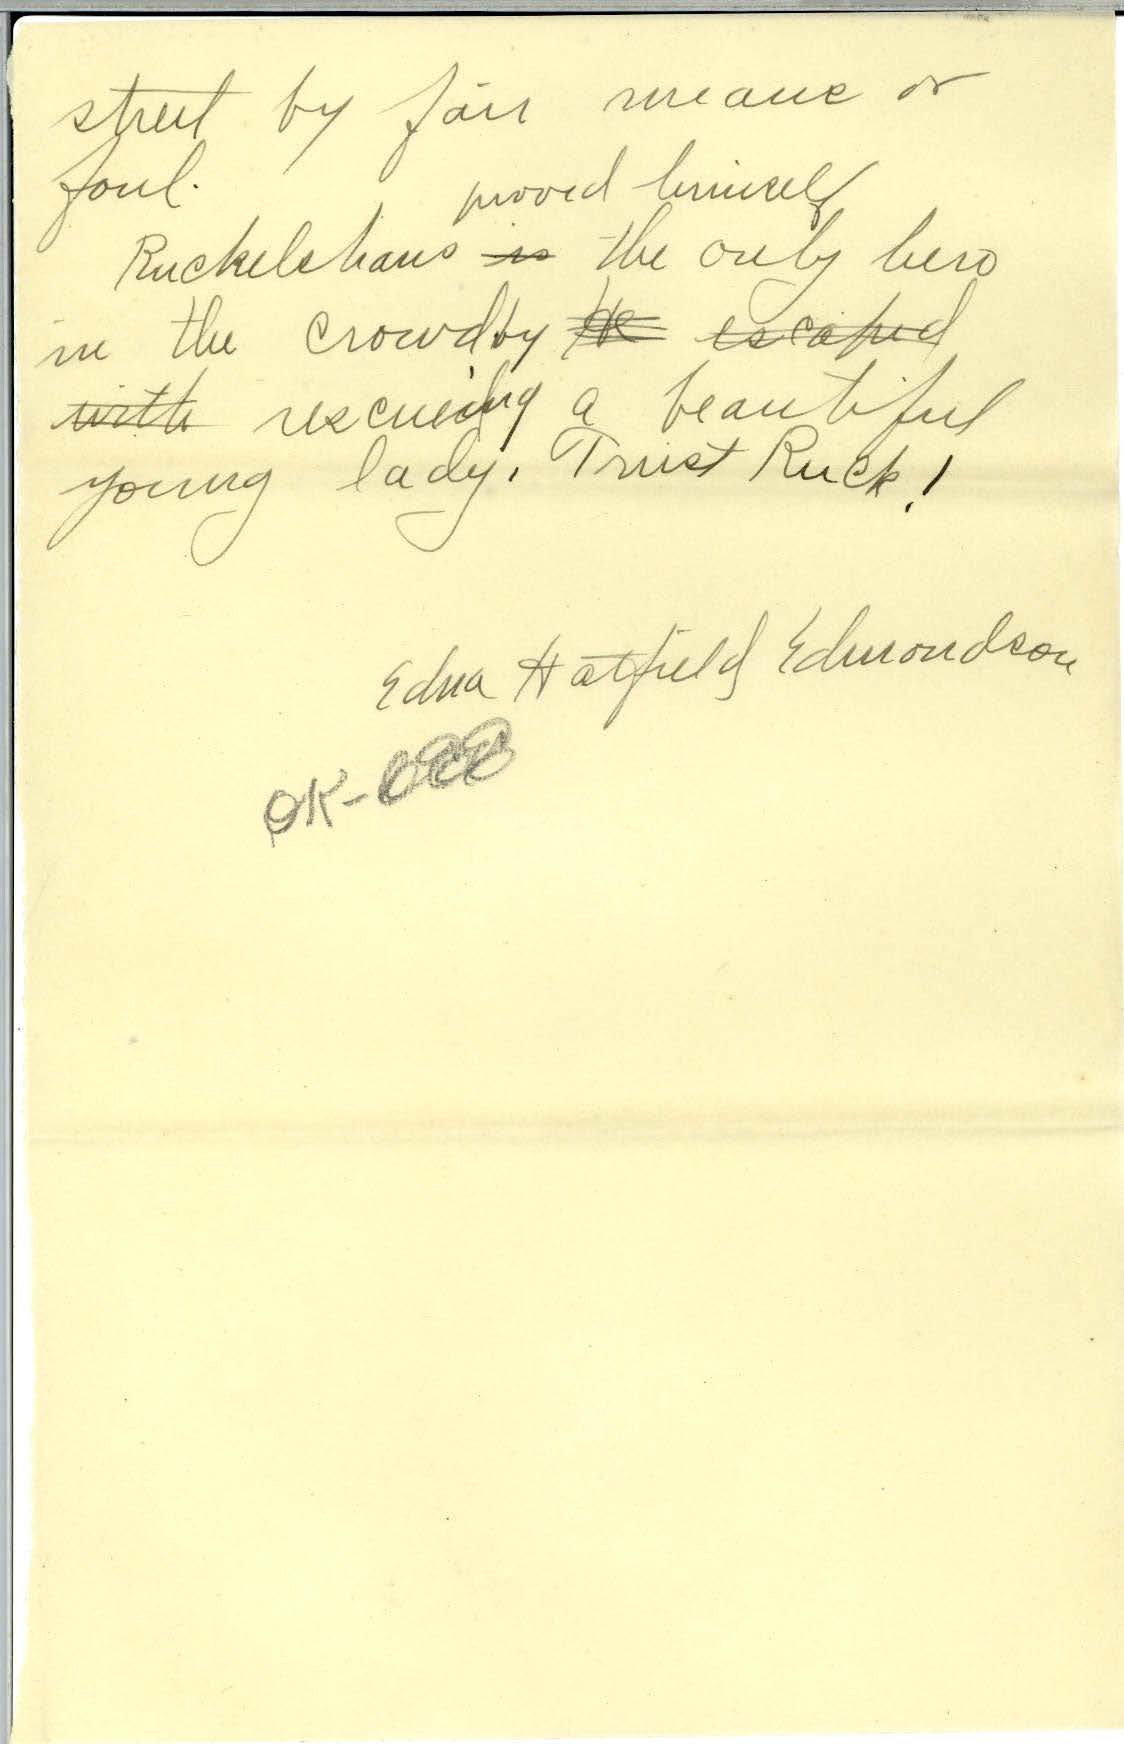 Scan of page 4 of Edna Hatfield's April 30, 1922 letter to Frank R. Elliot - written in cursive handwriting.